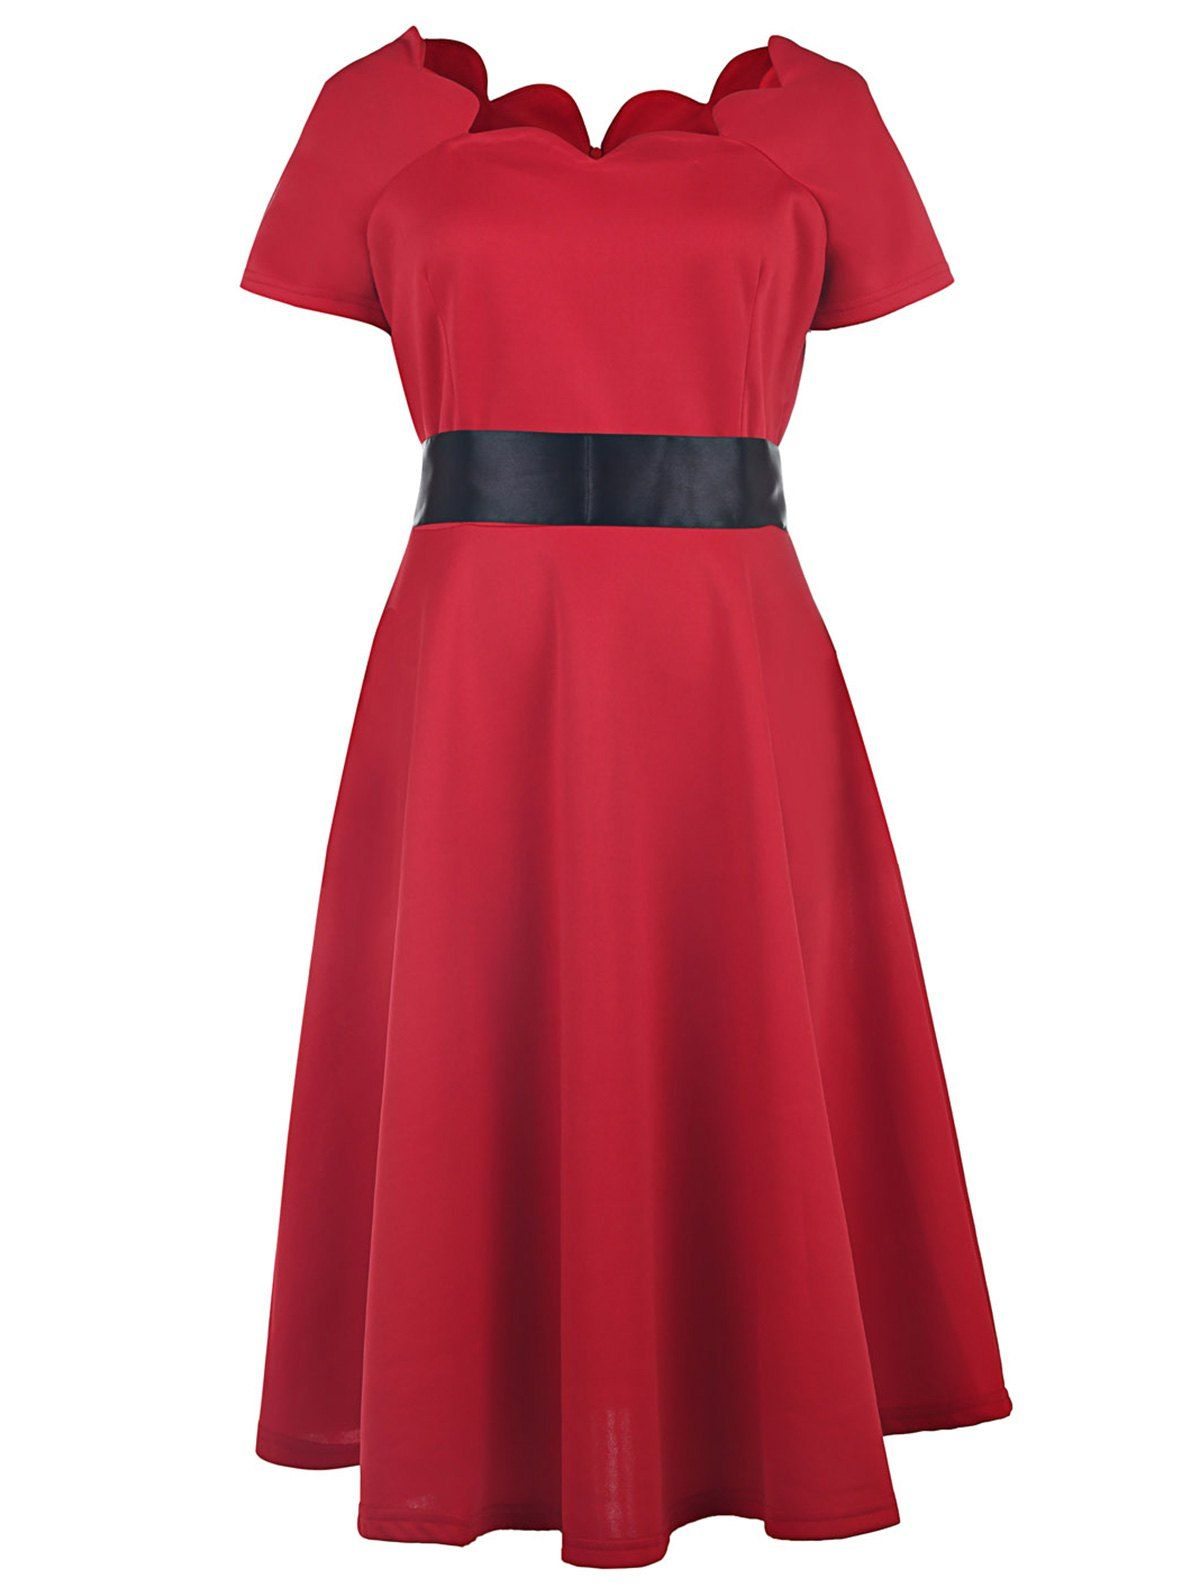 Vintage style scoop neck short sleeve red ball gown dress for women